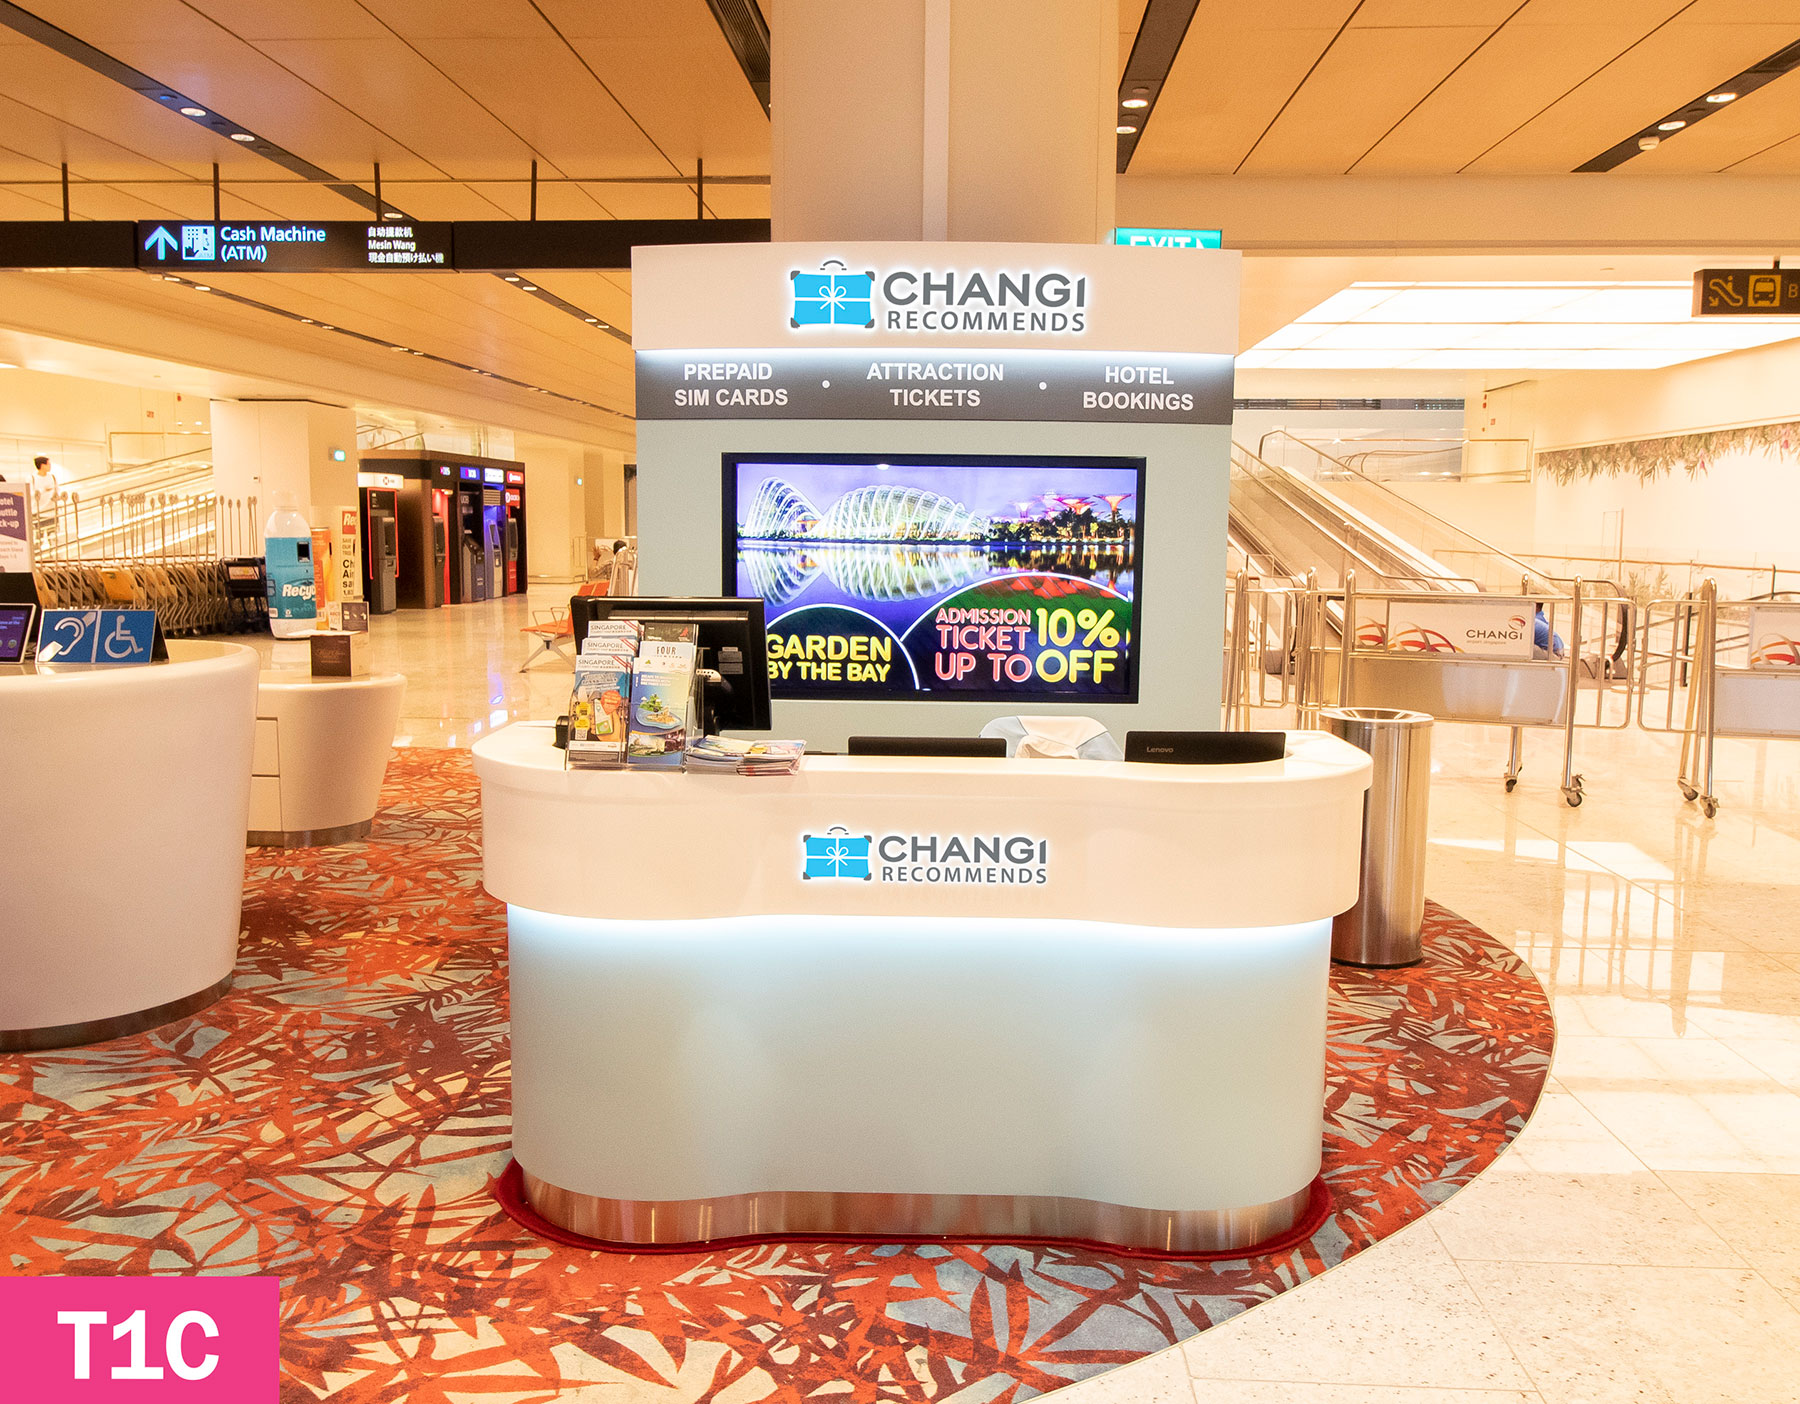 CHANGI RECOMMENDS COUNTER